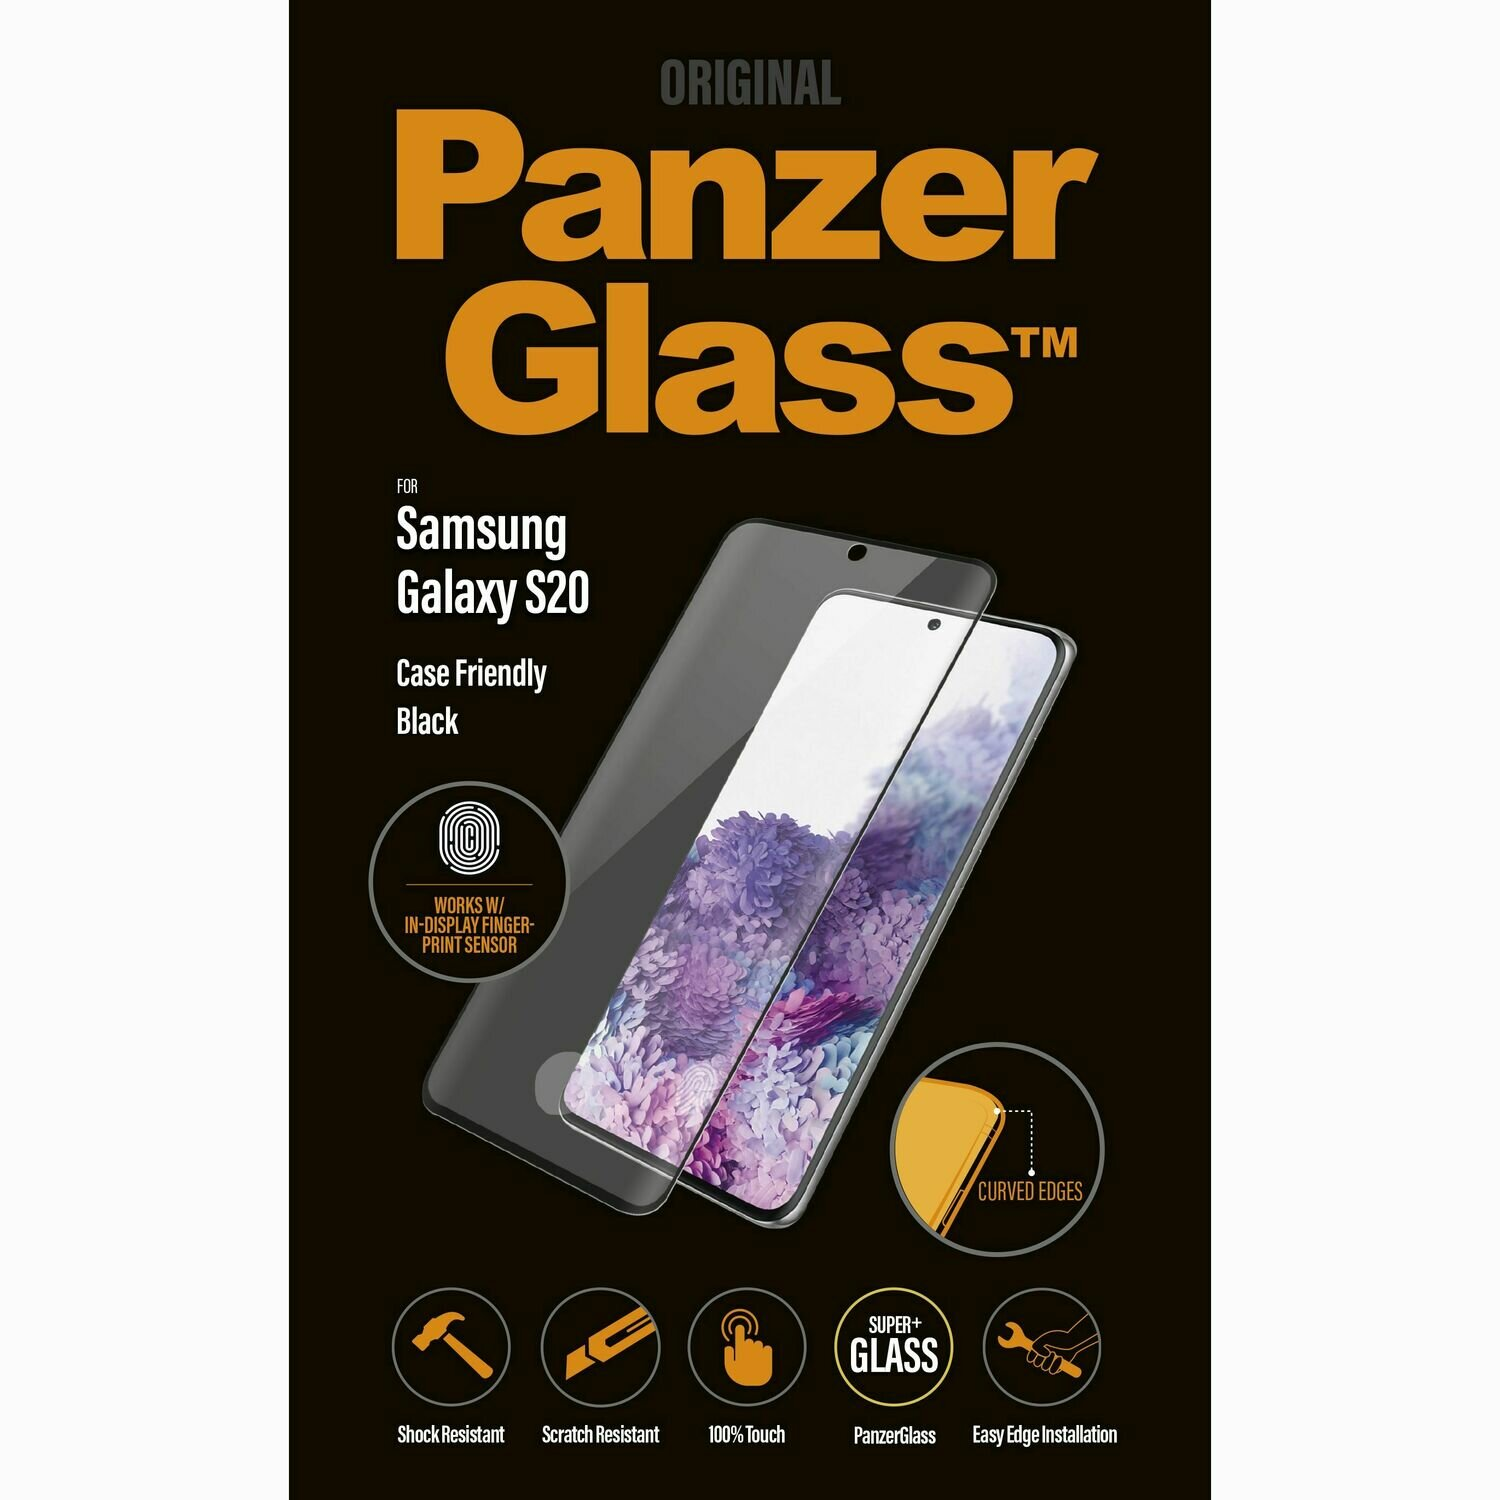 PanzerGlass CaseFriendly FP for Galaxy S20 black